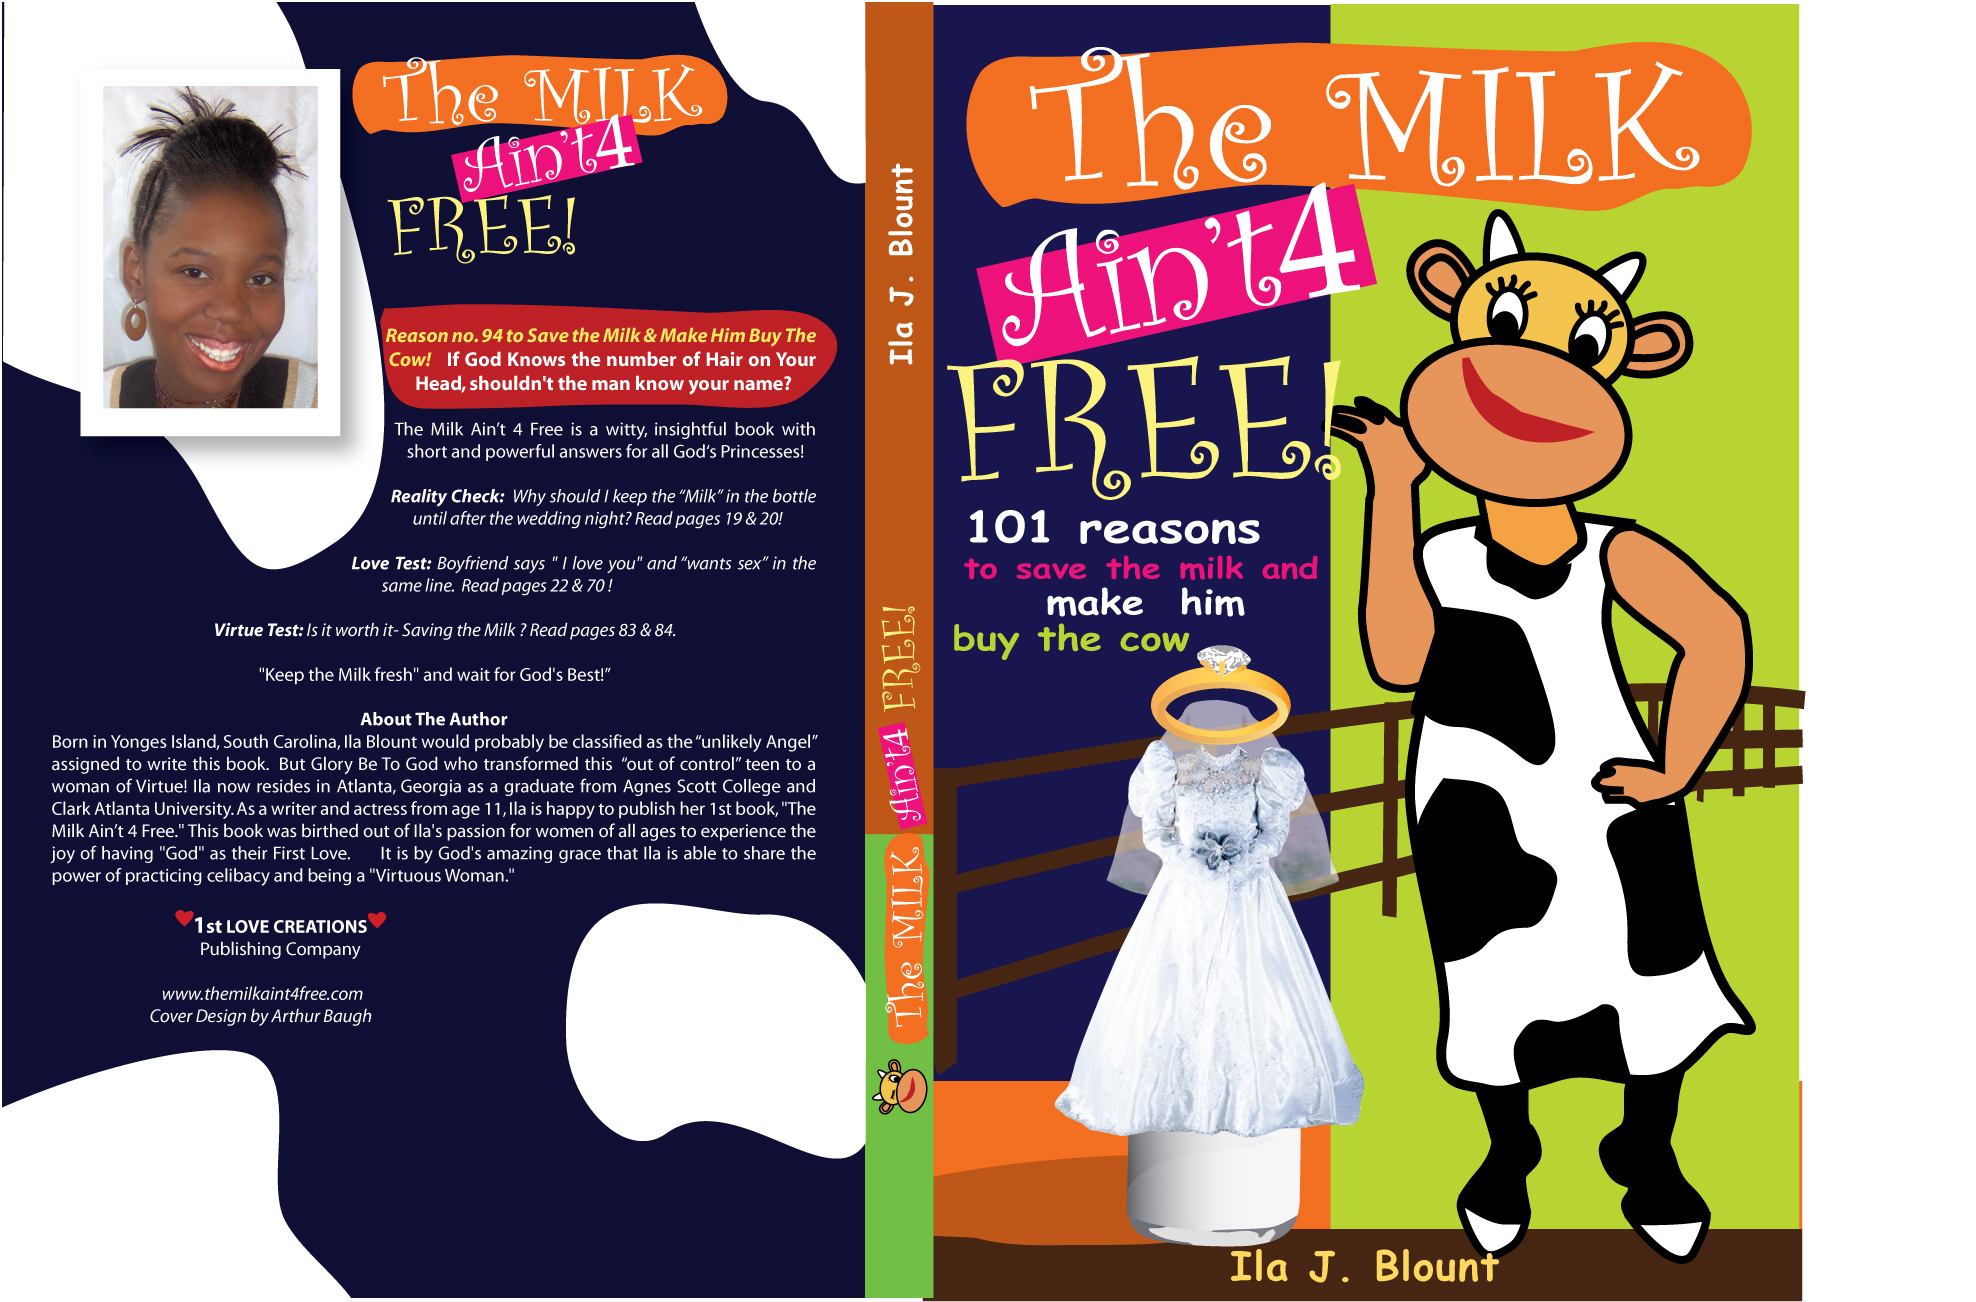 The Milk Ain't 4 Free! 101 Reasons to Save The Milk & Make Him Buy The Cow!